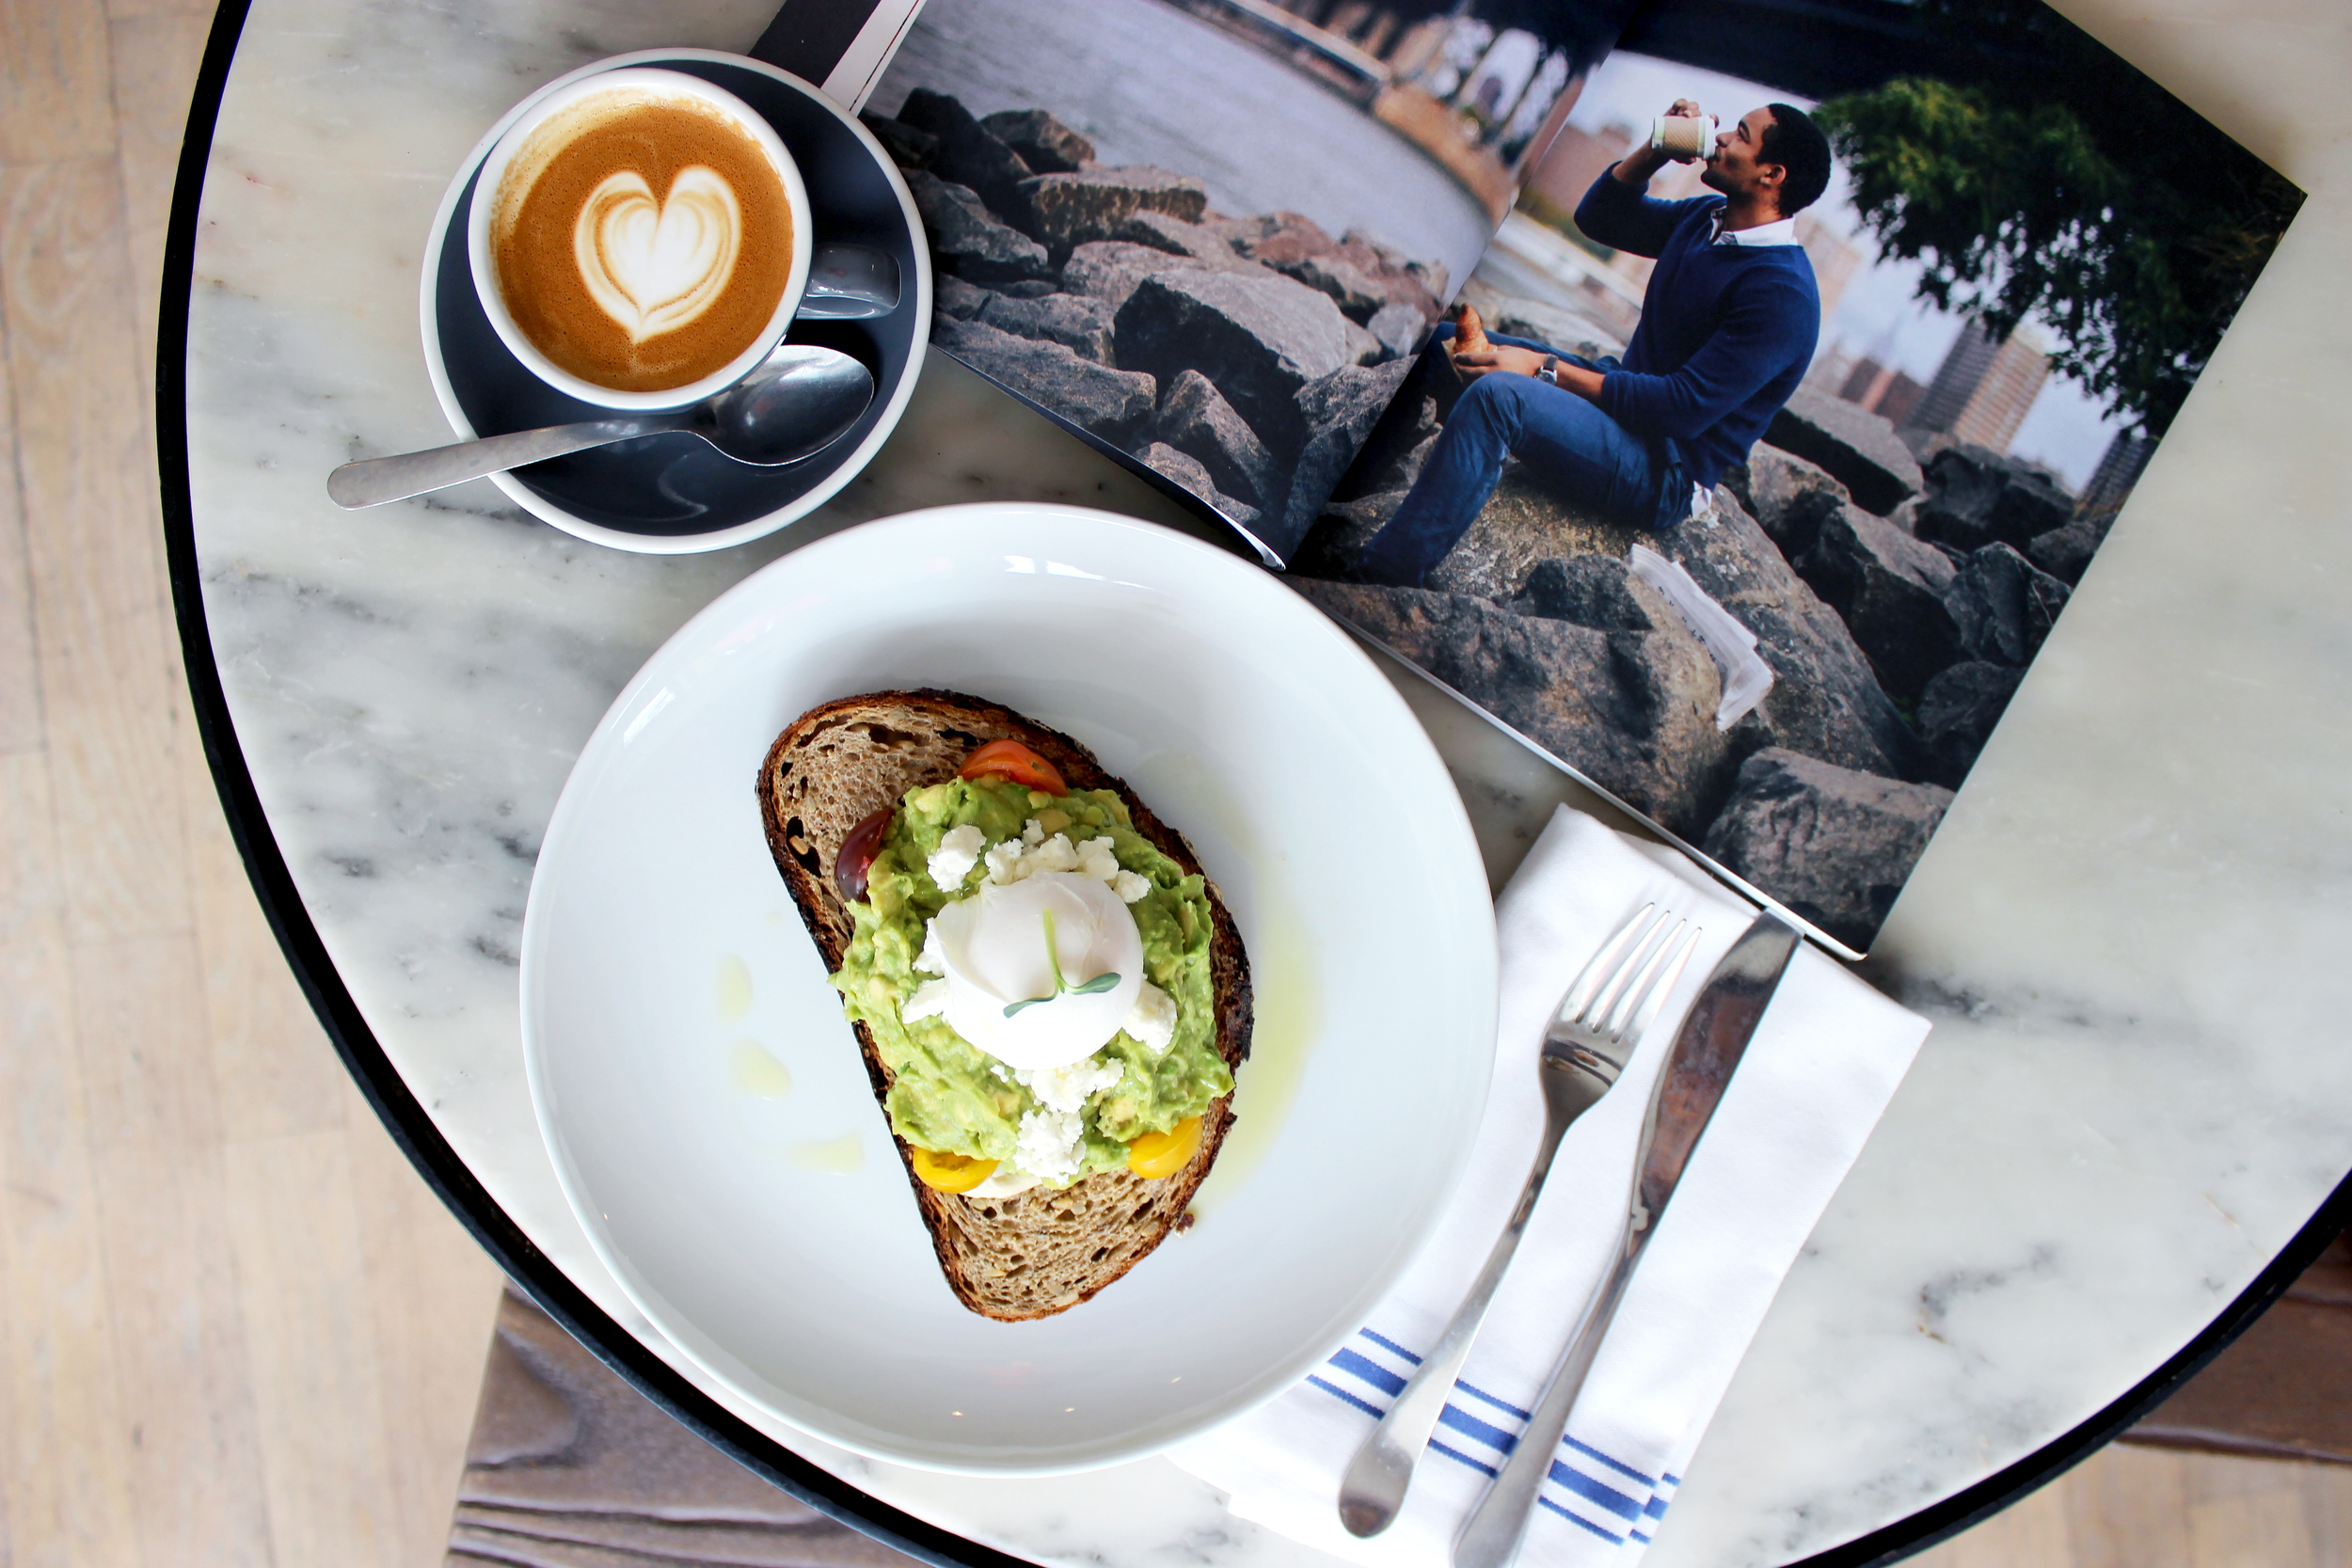 A delicious breakfast of a flat white and an amazing avocado smash with a side of  DRIFT , a magazine focused on coffee.